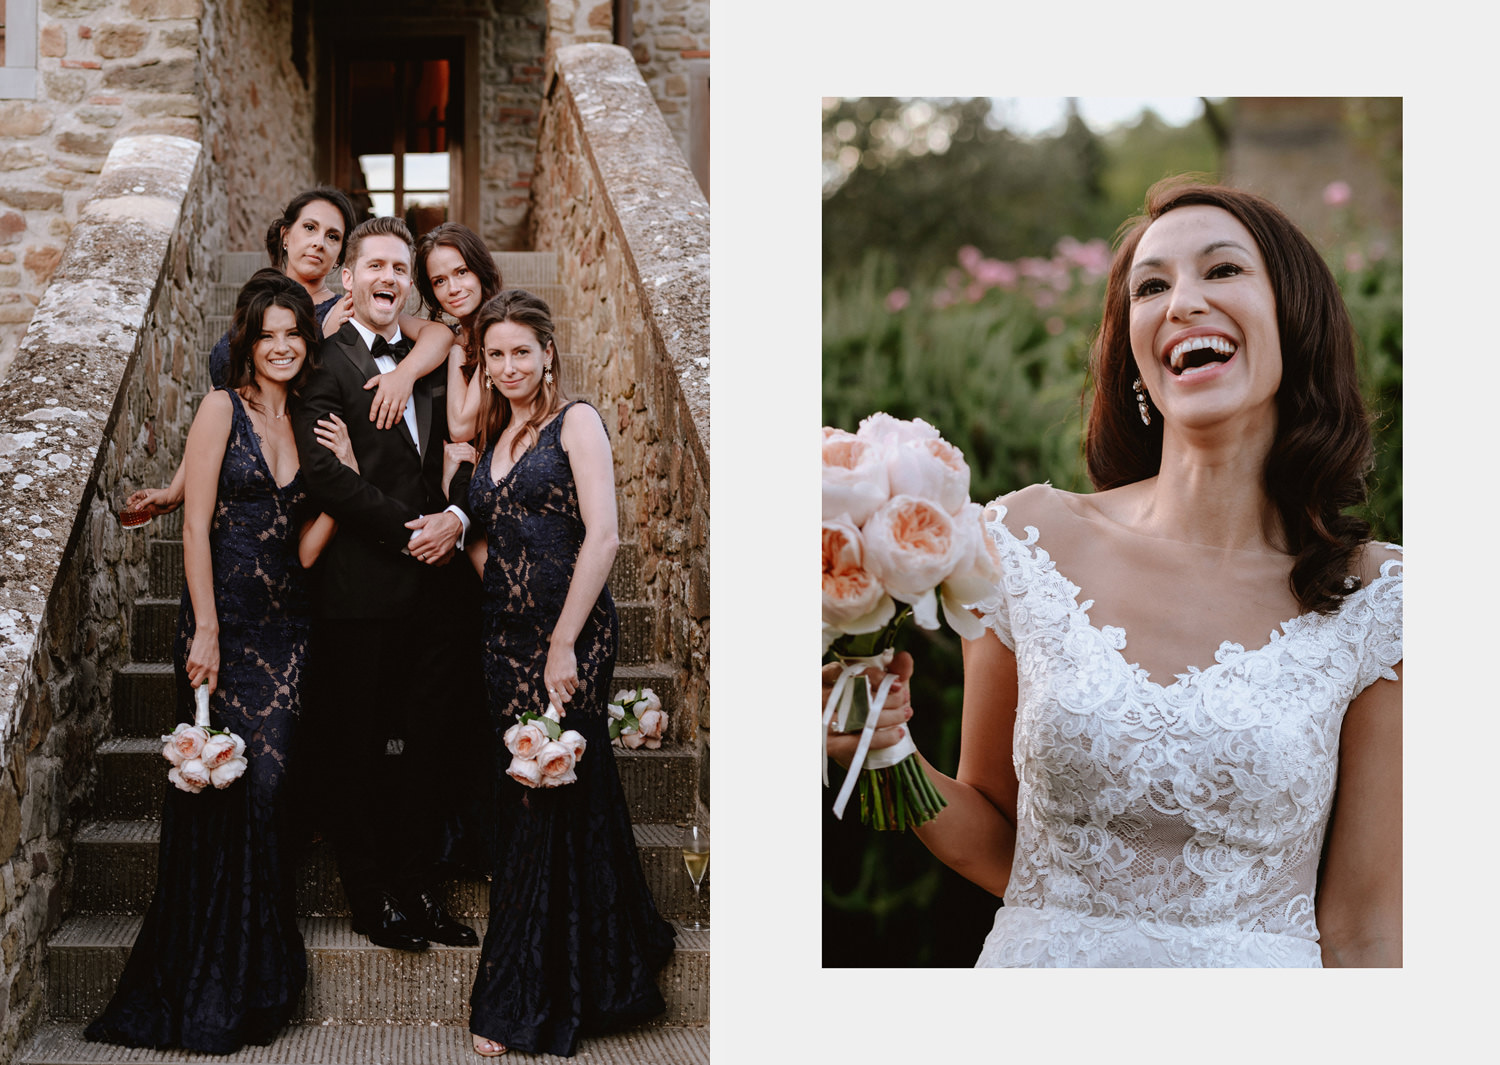 intimate wedding private villa tuscany photographer family formals portrait